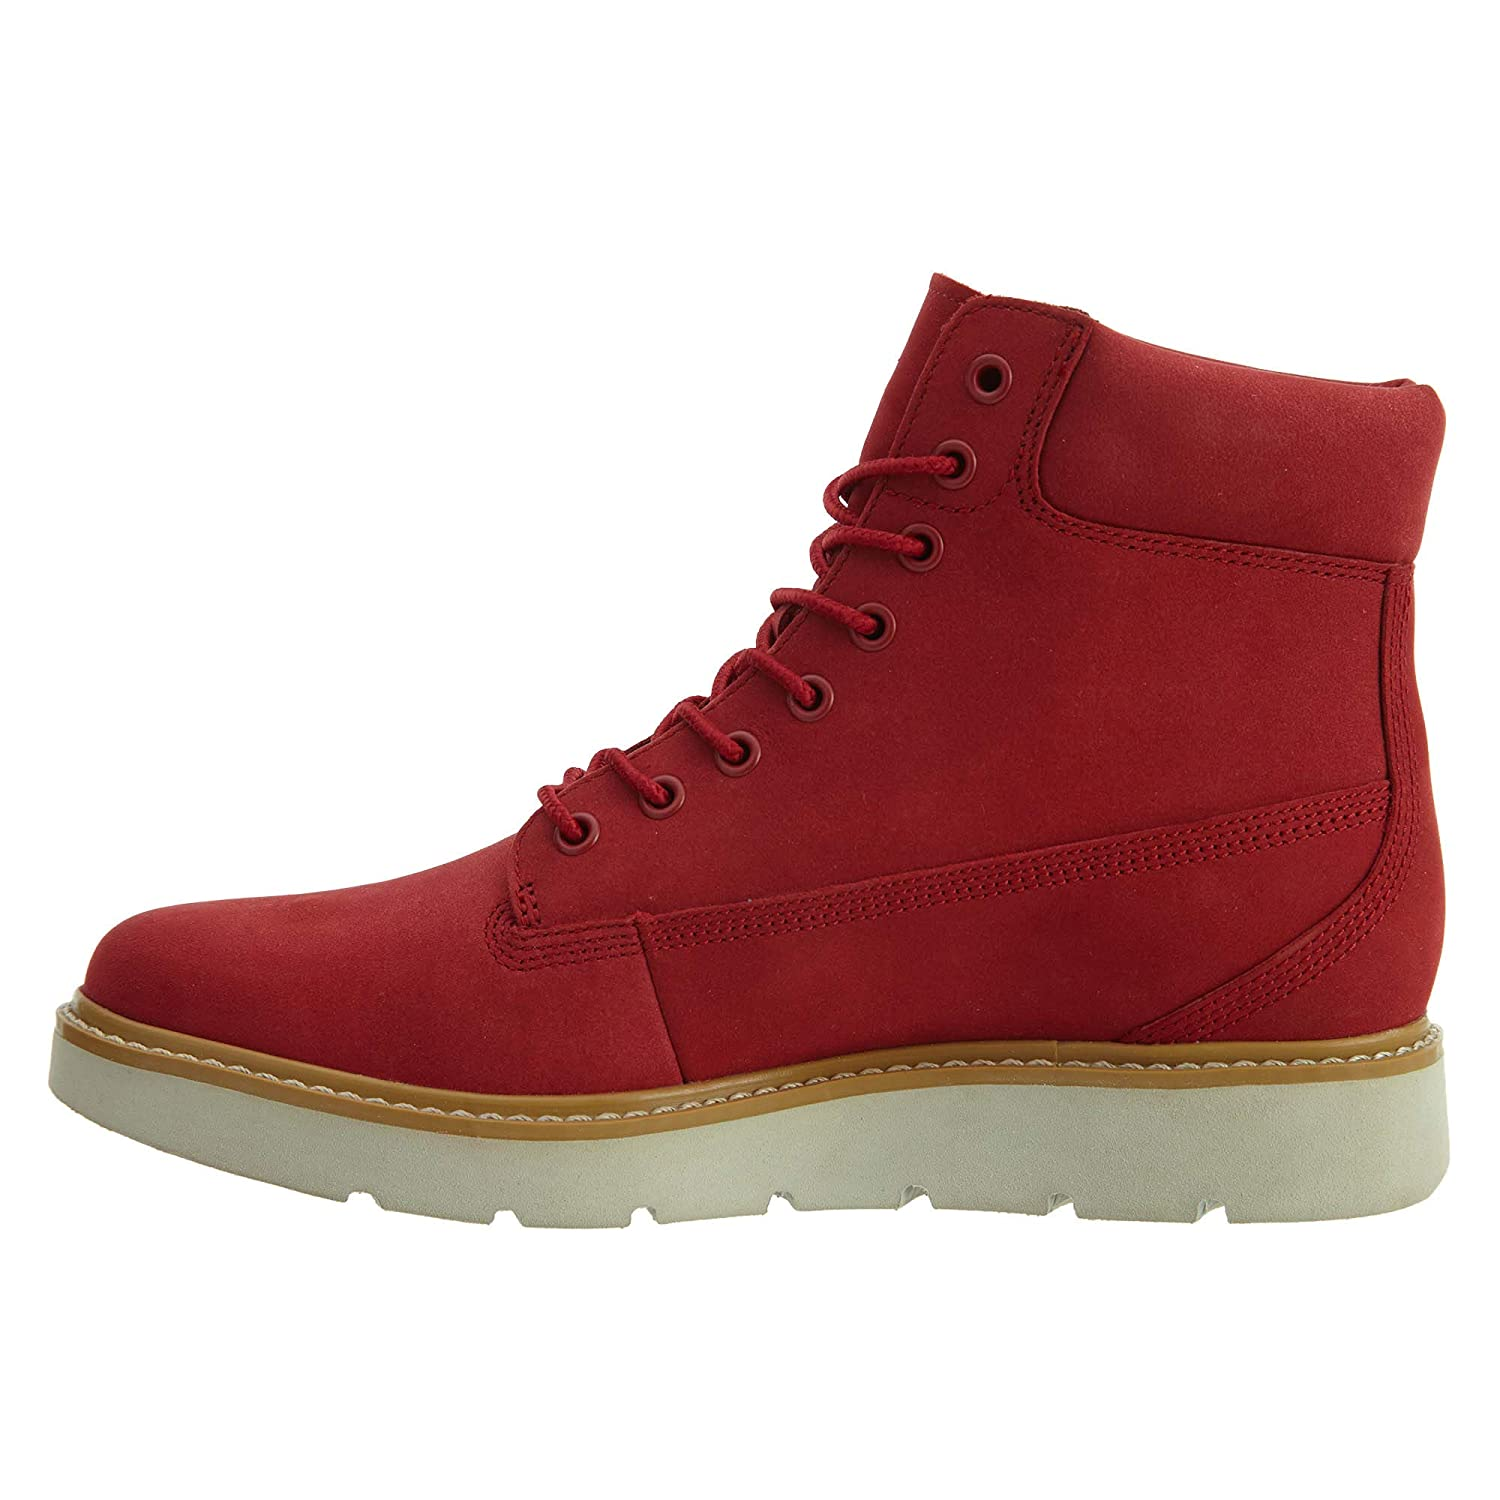 Timberland Women S Limited Release Ruby RED Kenniston 6-inch Lace-up Boots  (8.5)  Amazon.co.uk  Shoes   Bags dfb2e7f81